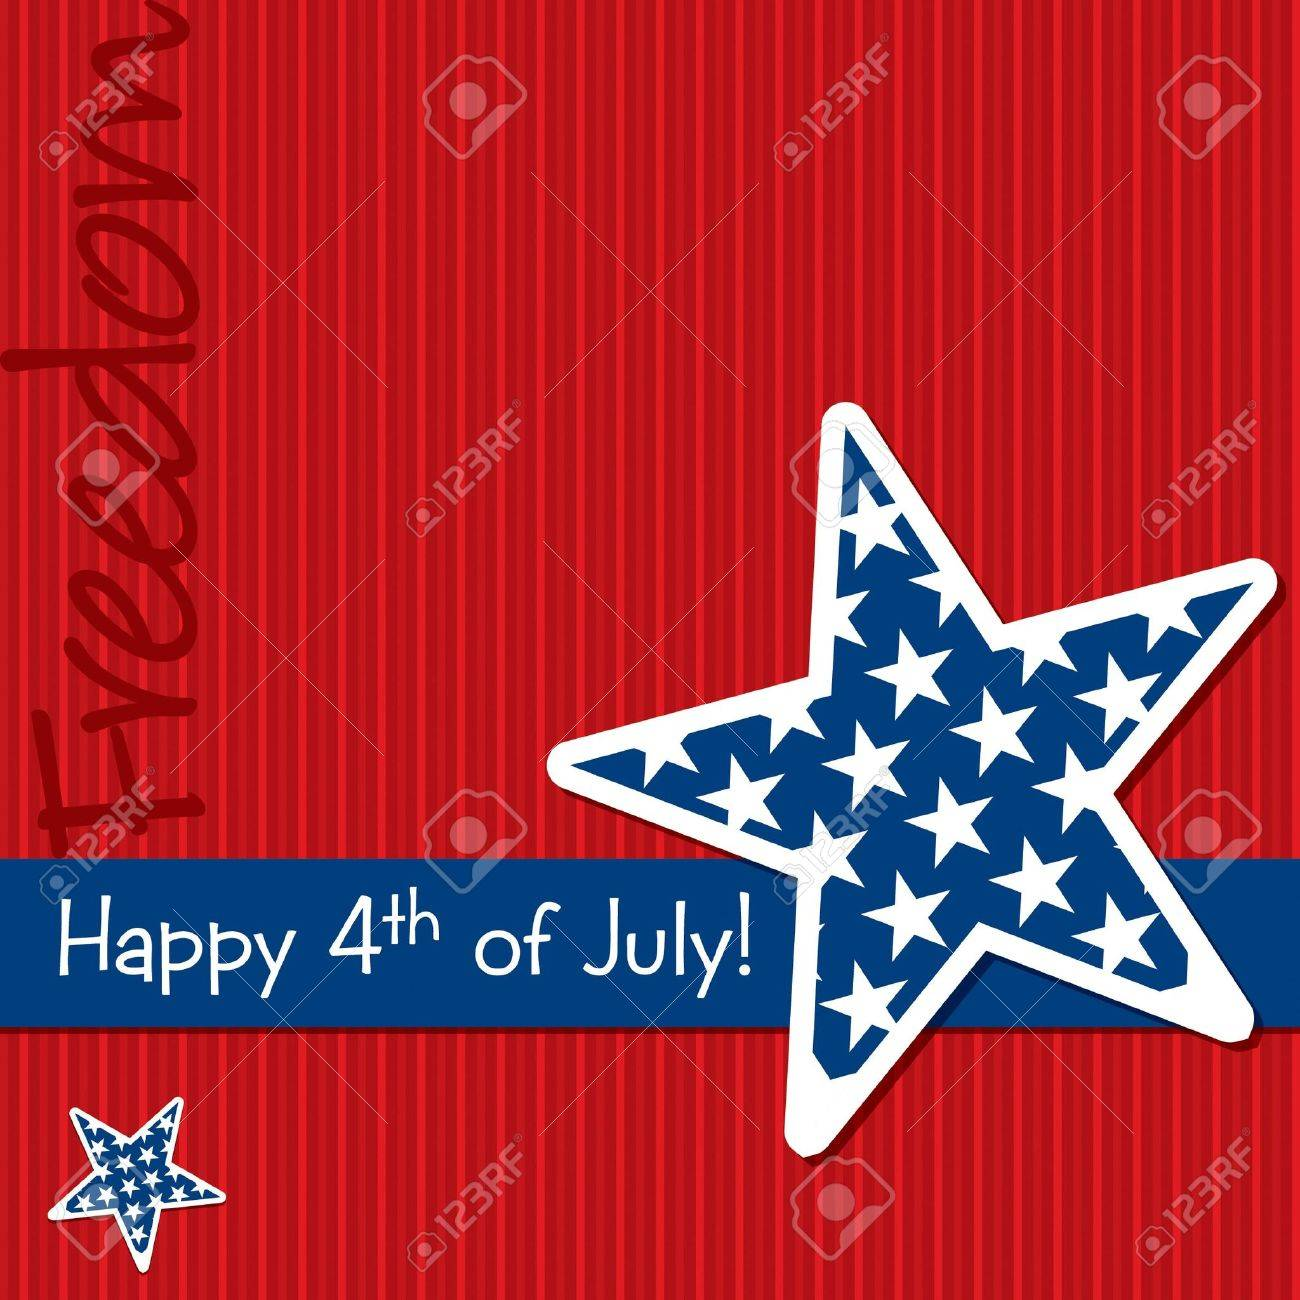 happy 4th of july star cut out card royalty free cliparts vectors